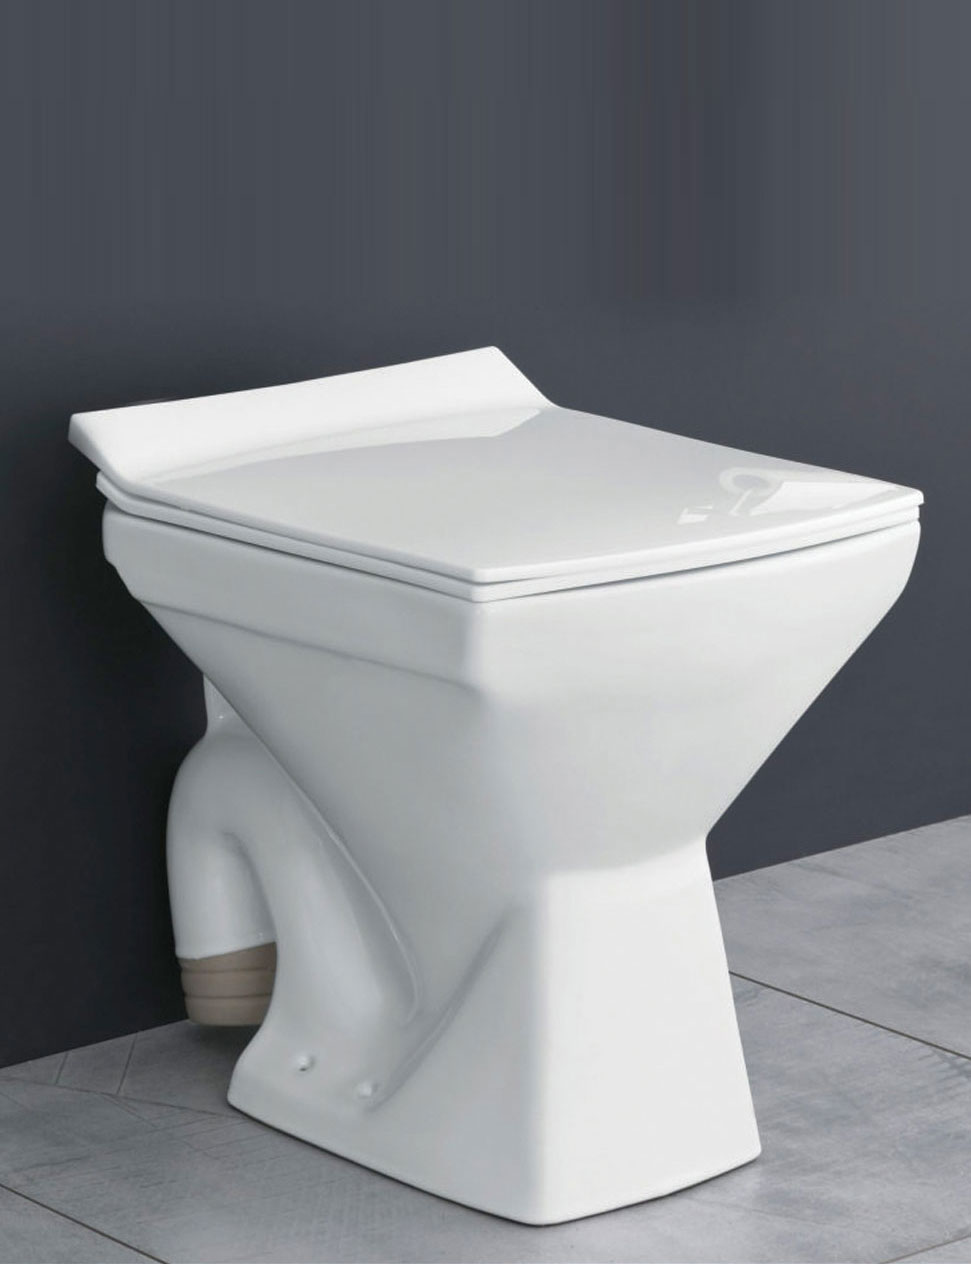 Water Closet Italian Ewc Anglo Indian Wall Hung Water Closet Manufacturer Exporter And Supplier